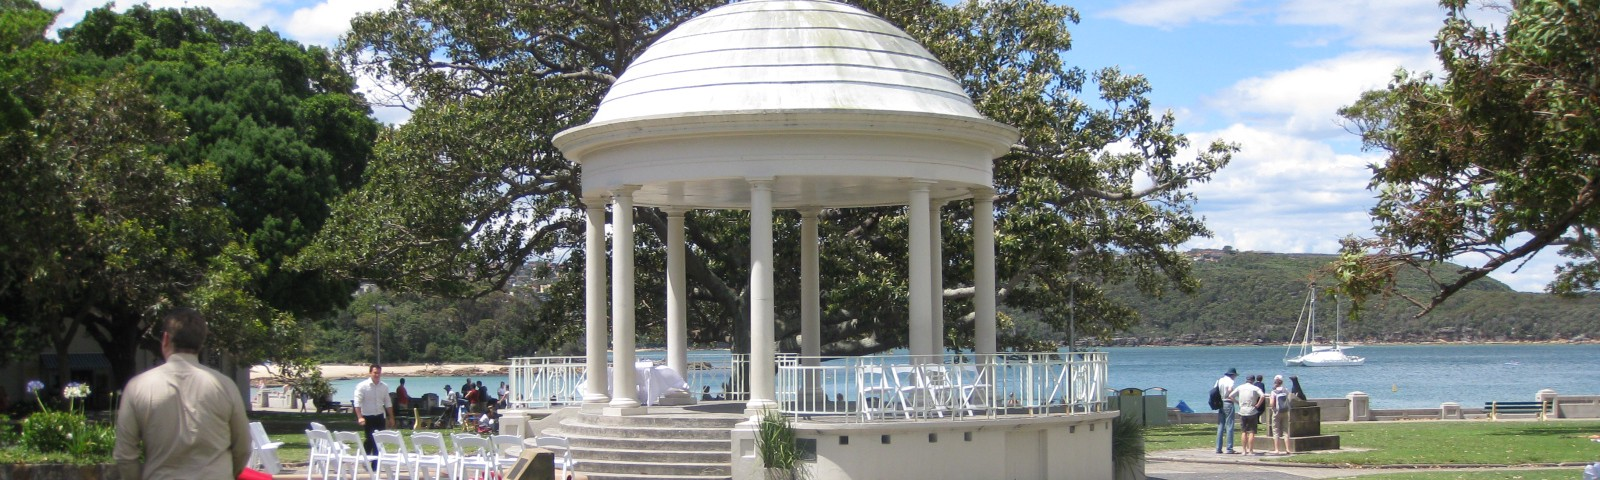 A large, raised rotunda with a white, dome shaped roof, in a grassy waterside park with a boat moored in the distance.